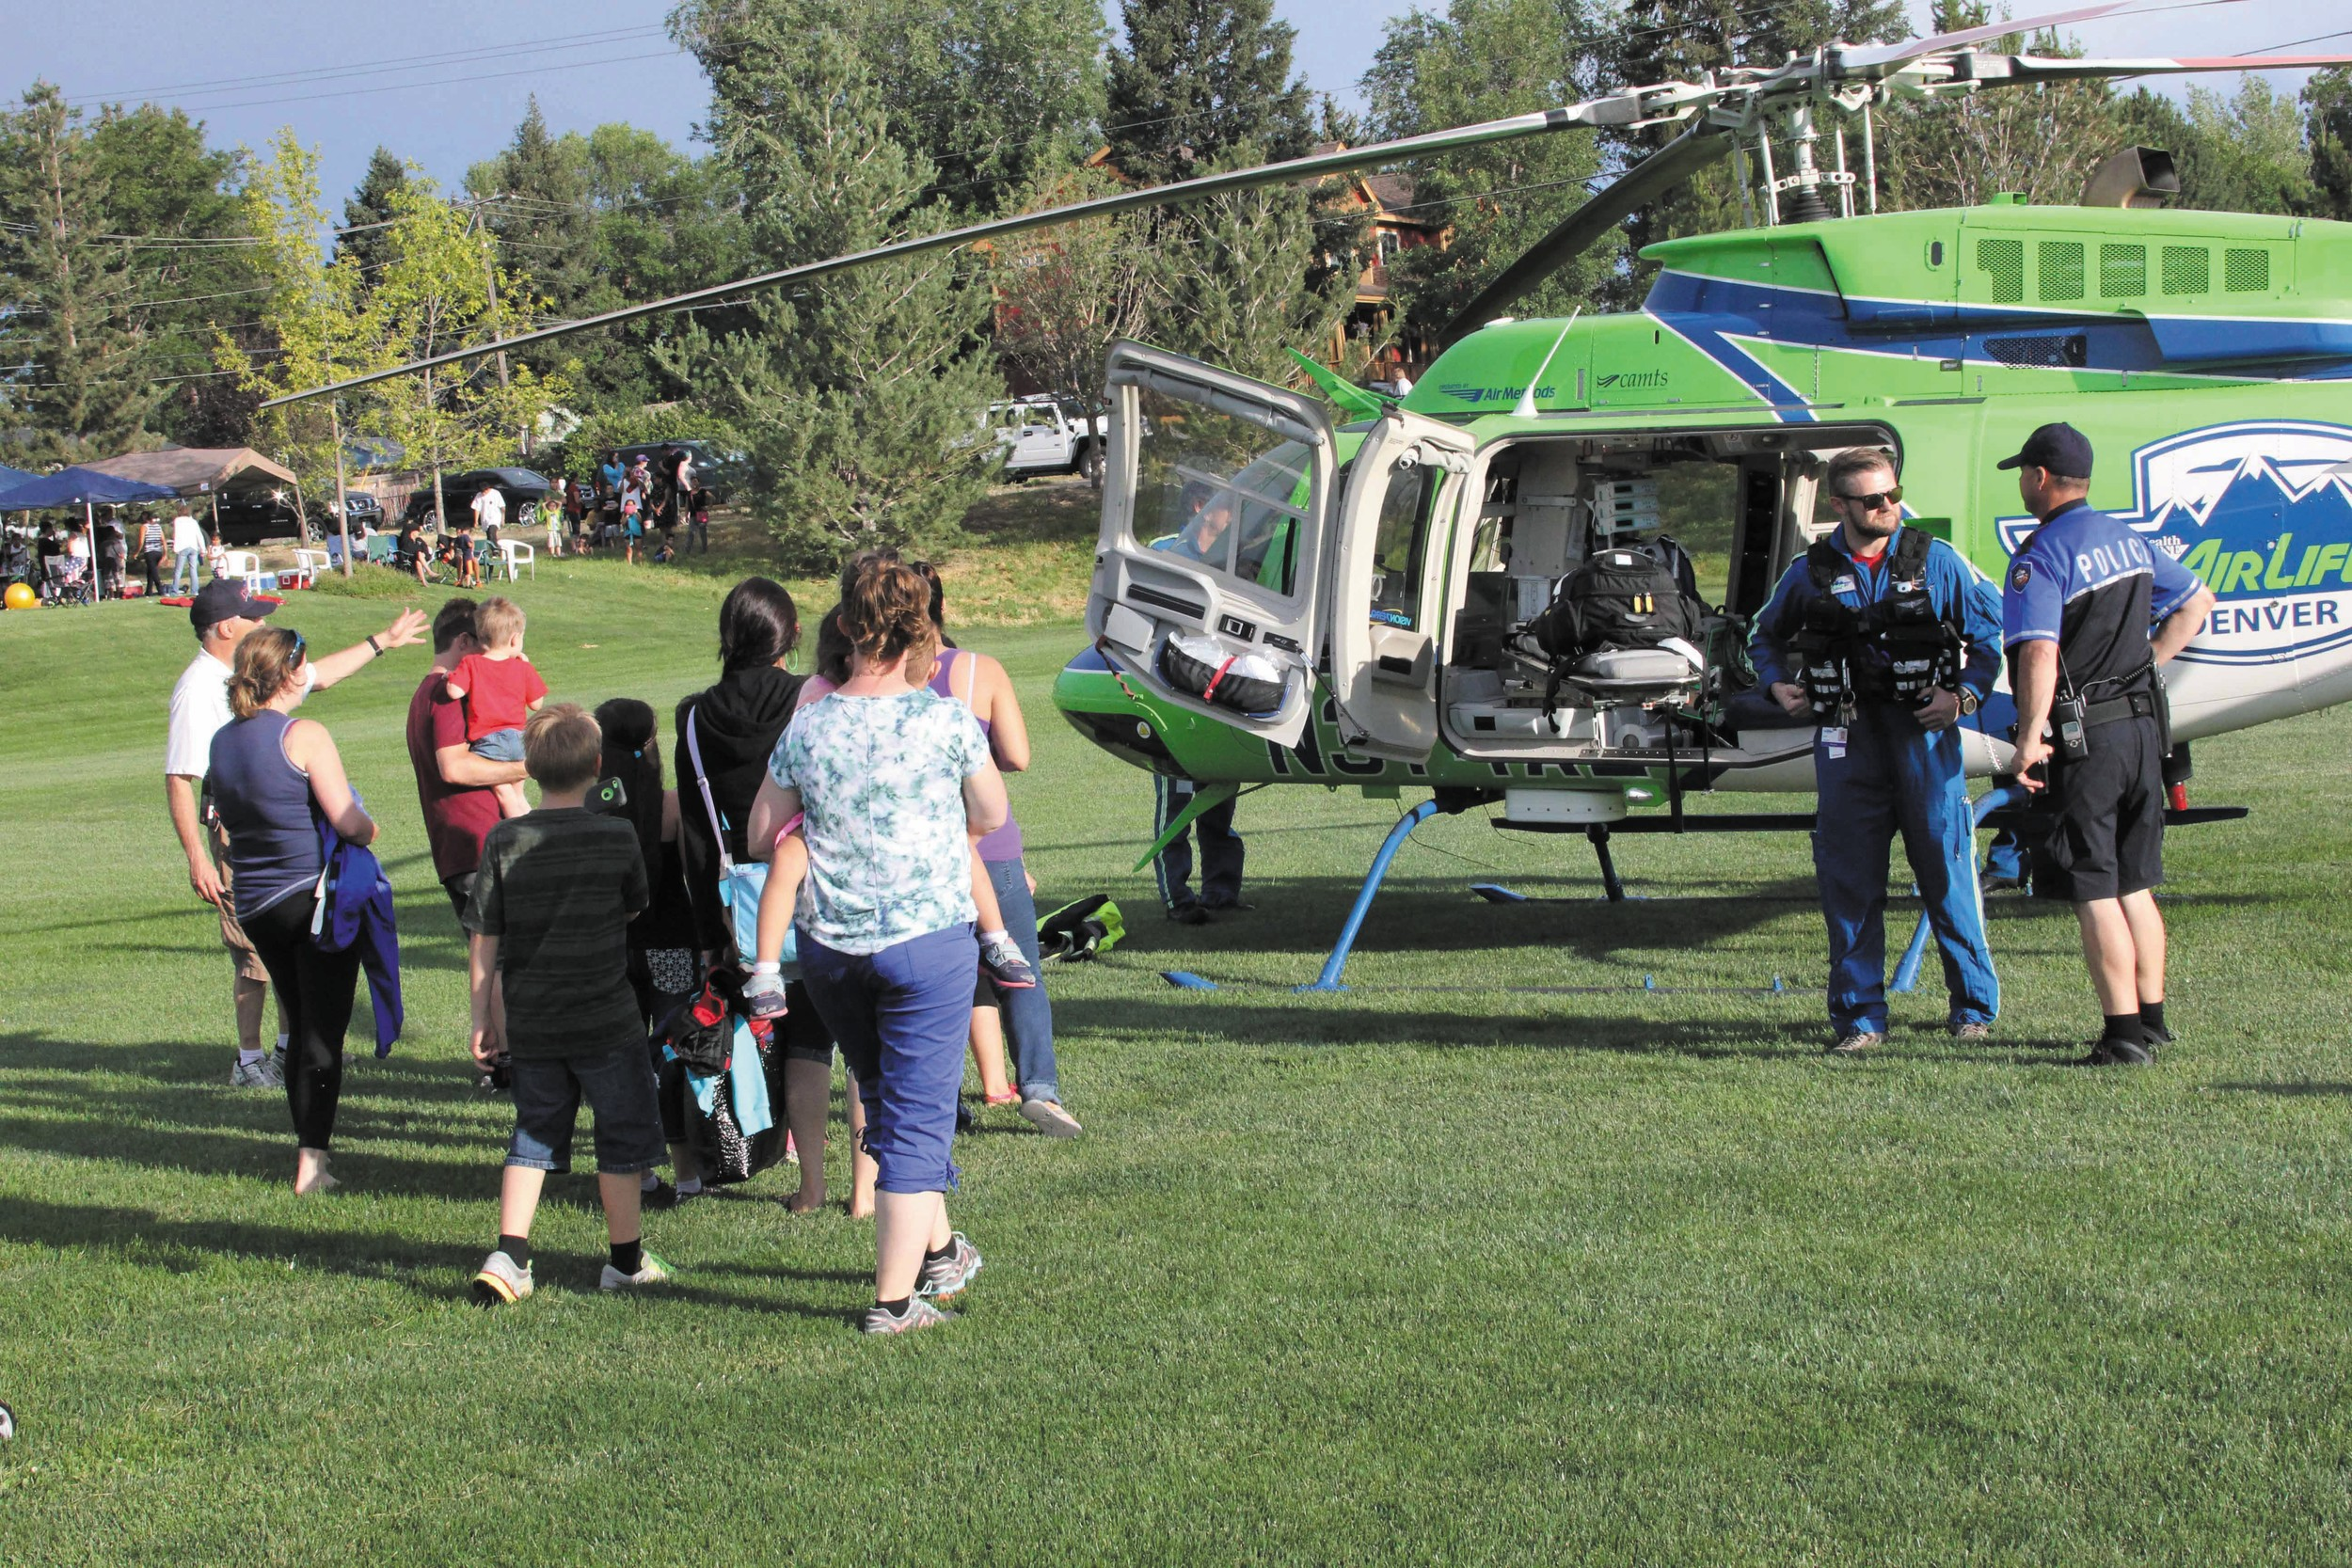 The first group of parents and children are escorted to get an up close look at the AirLife helicopter that landed at Cornerstone Park as part of the Family Fun and Firework festivities. The helicopter was on the ground about an hour so all the people lined up and waiting could get to come out, visit with the crew and look inside the chopper.